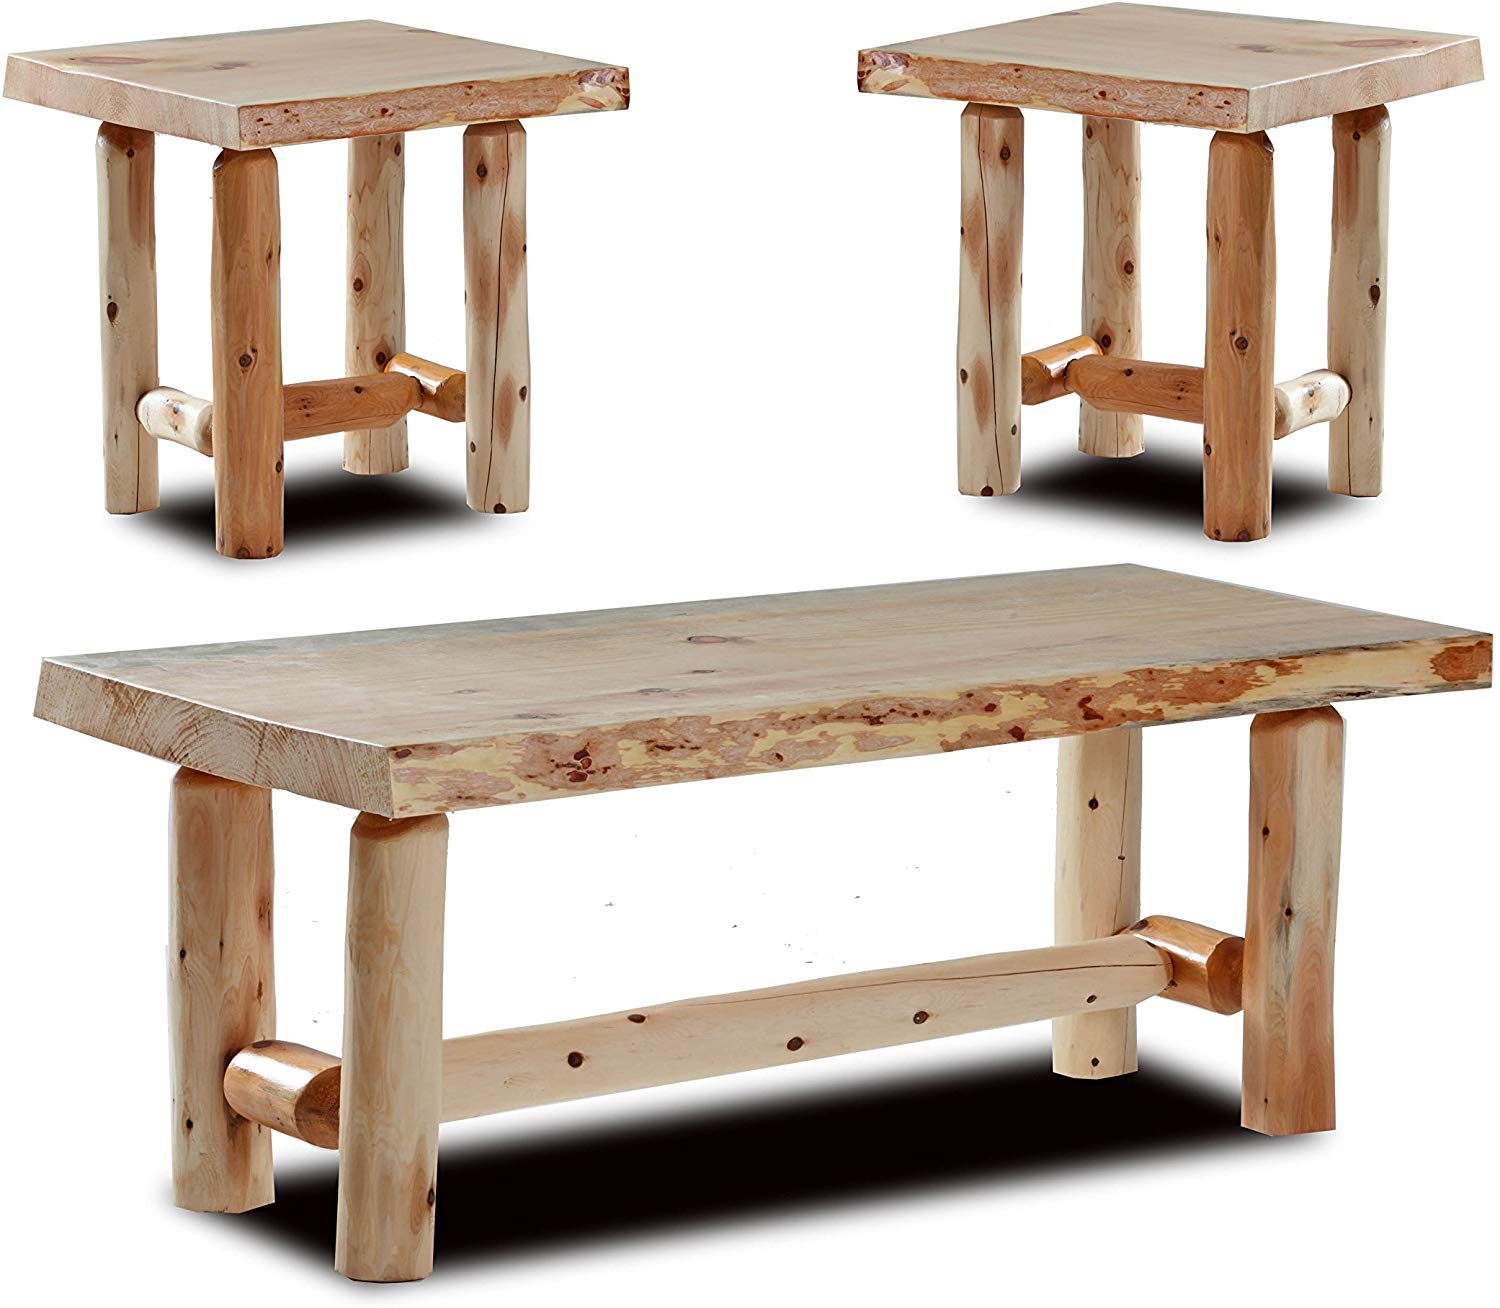 Rustic Log Coffee and End Table Set Pine and Cedar (Natural Clear)